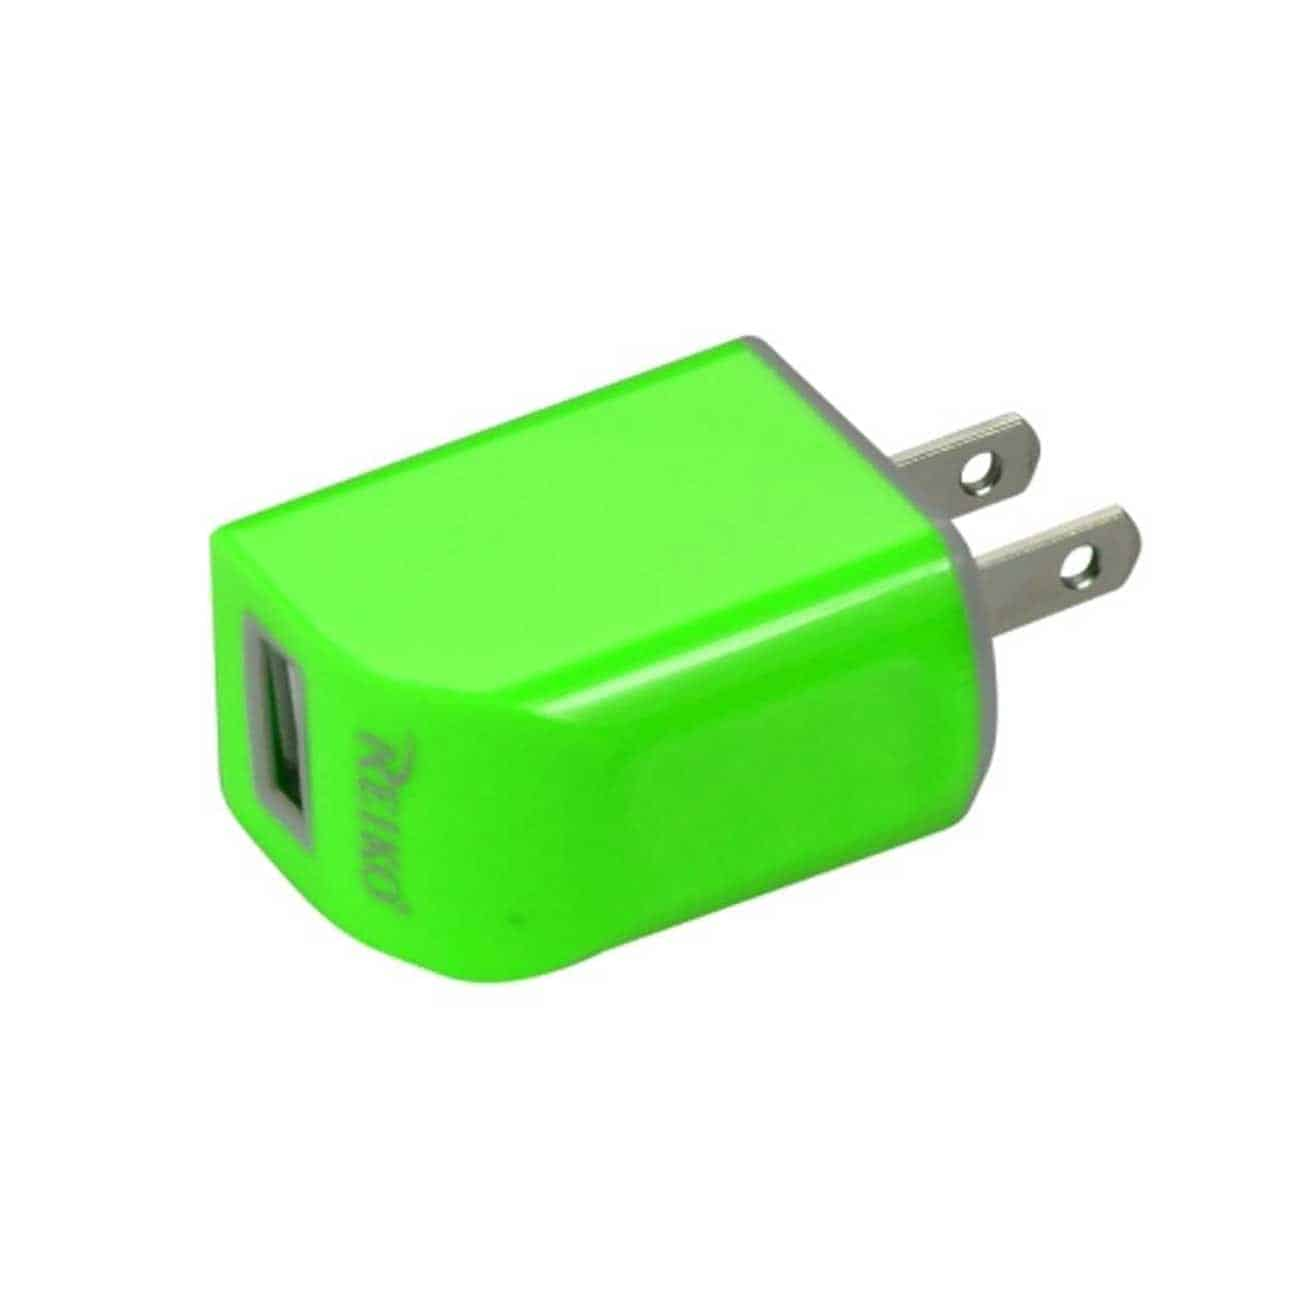 MICRO USB 1 AMP PORTABLE MICRO TRAVEL ADAPTER CHARGER WITH CABLE IN GREEN